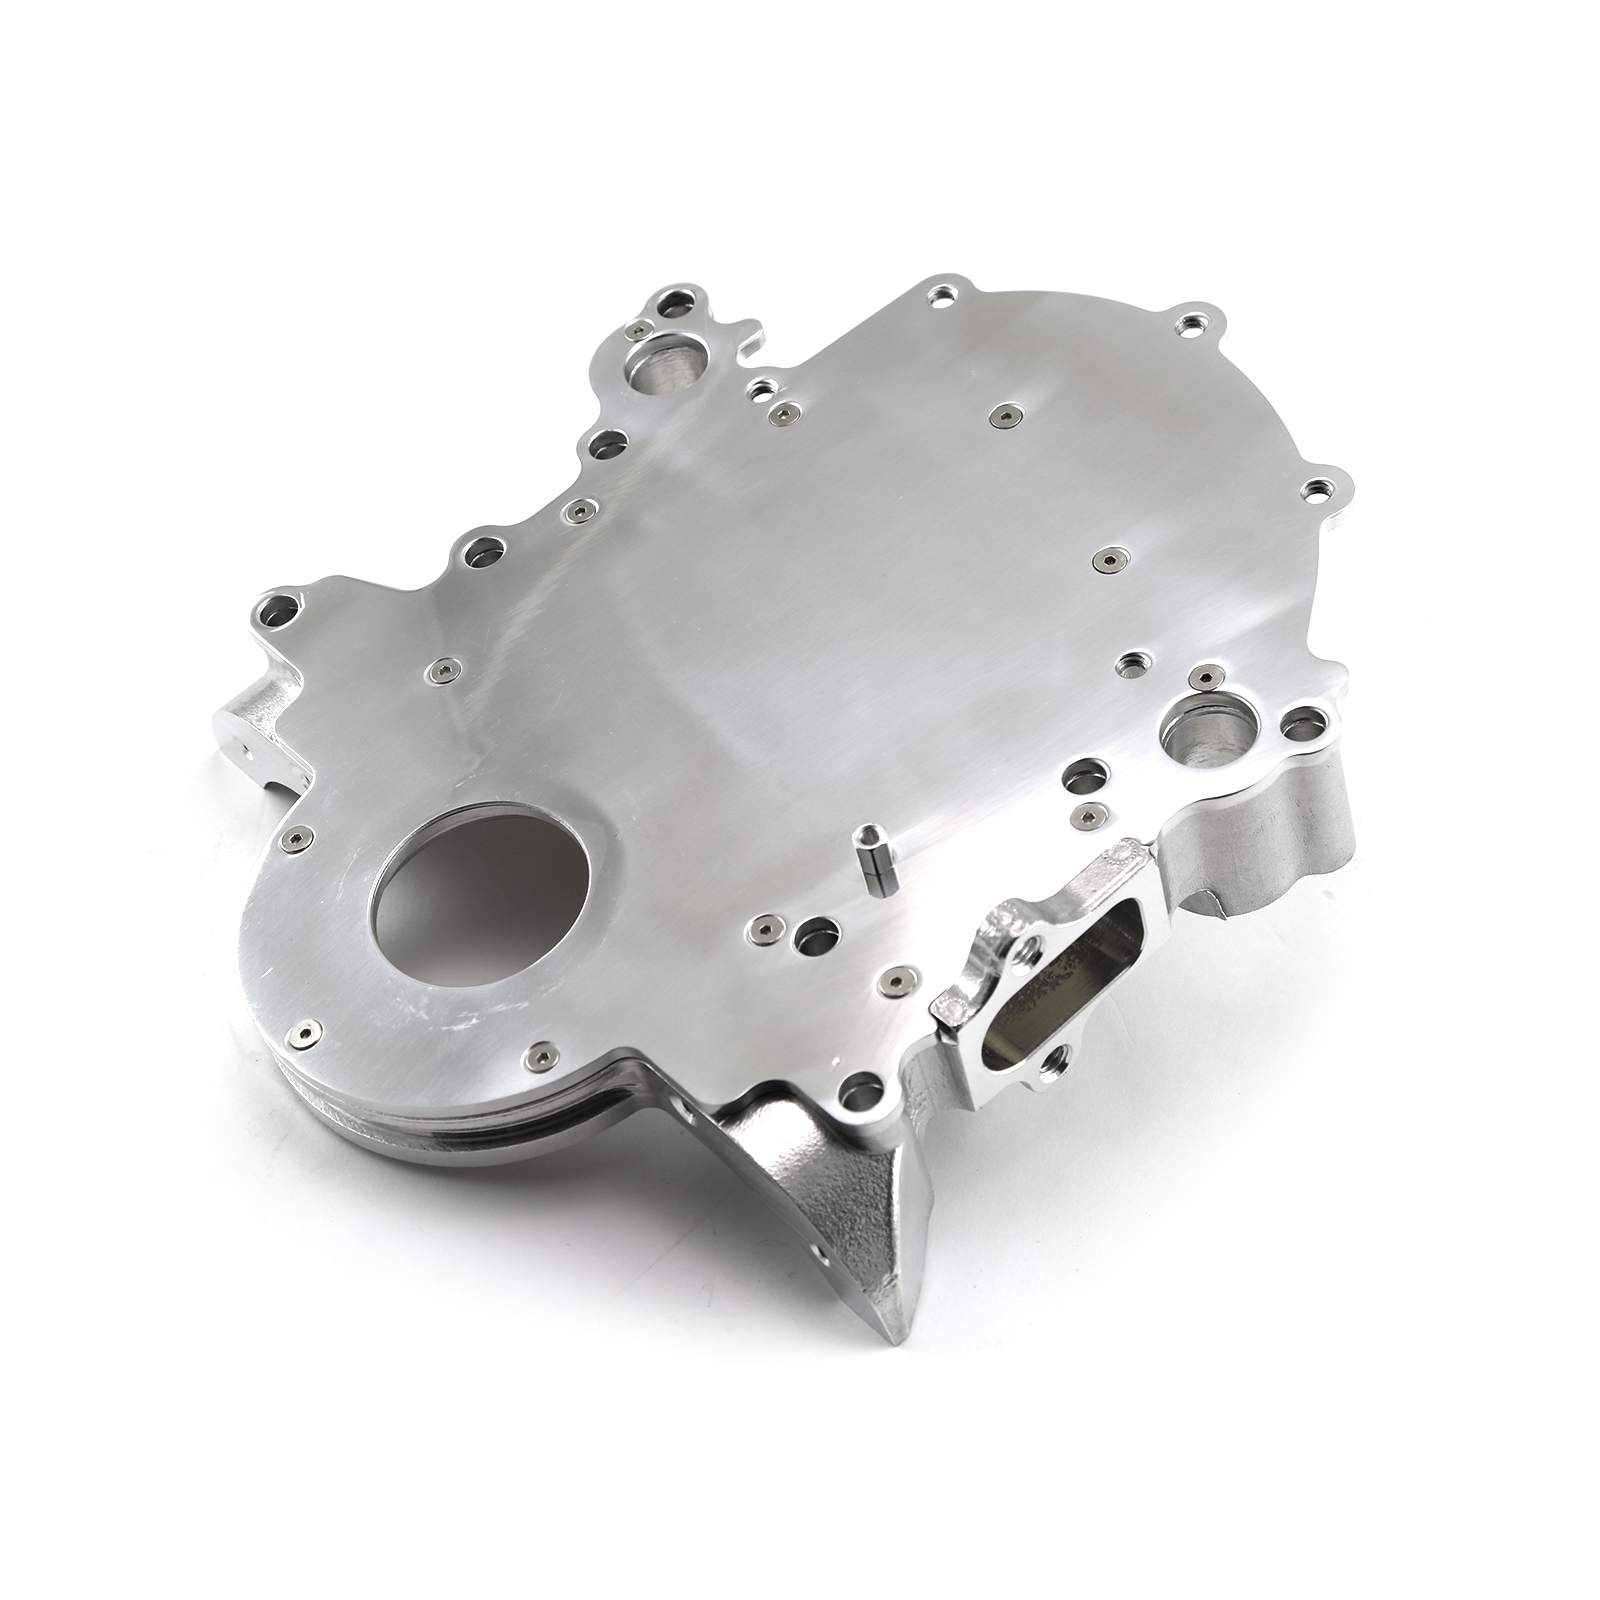 Ford SB 289 302 351 Windsor 5.0L 1968-99 2pc Billet Aluminum Timing Chain Cover